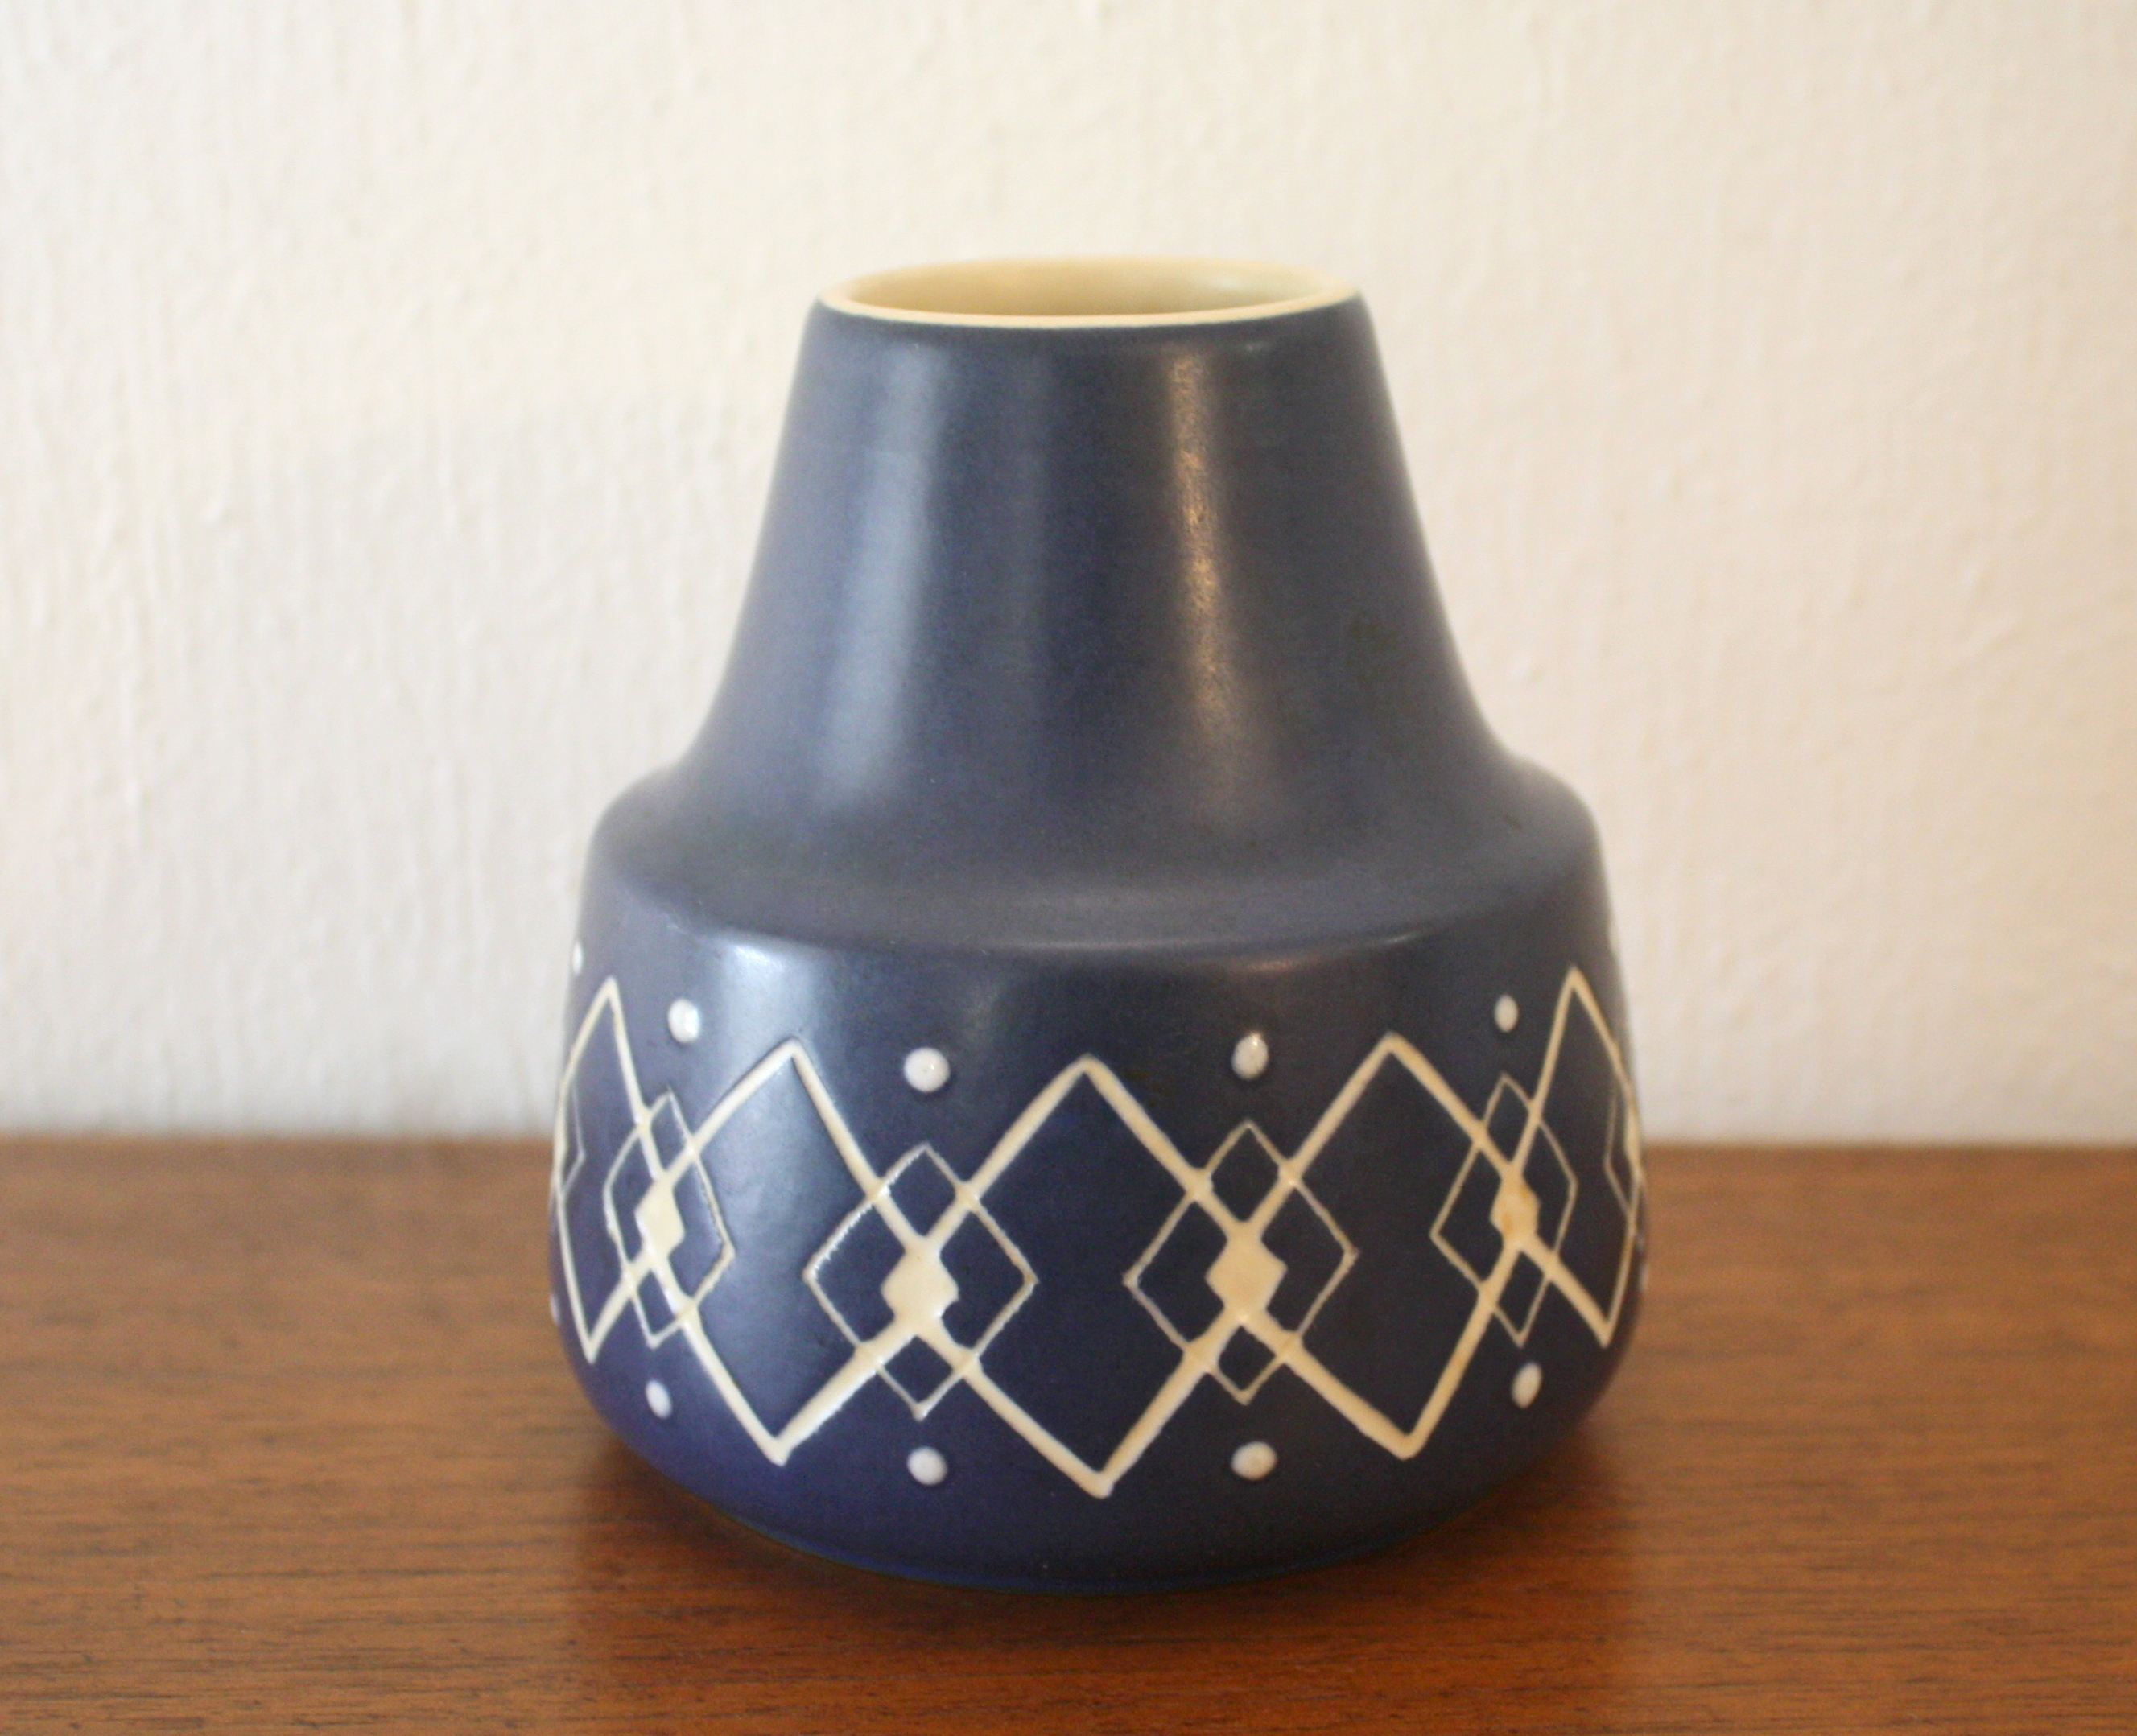 Mid Century Modern Studio Pottery From Denmark And Israel